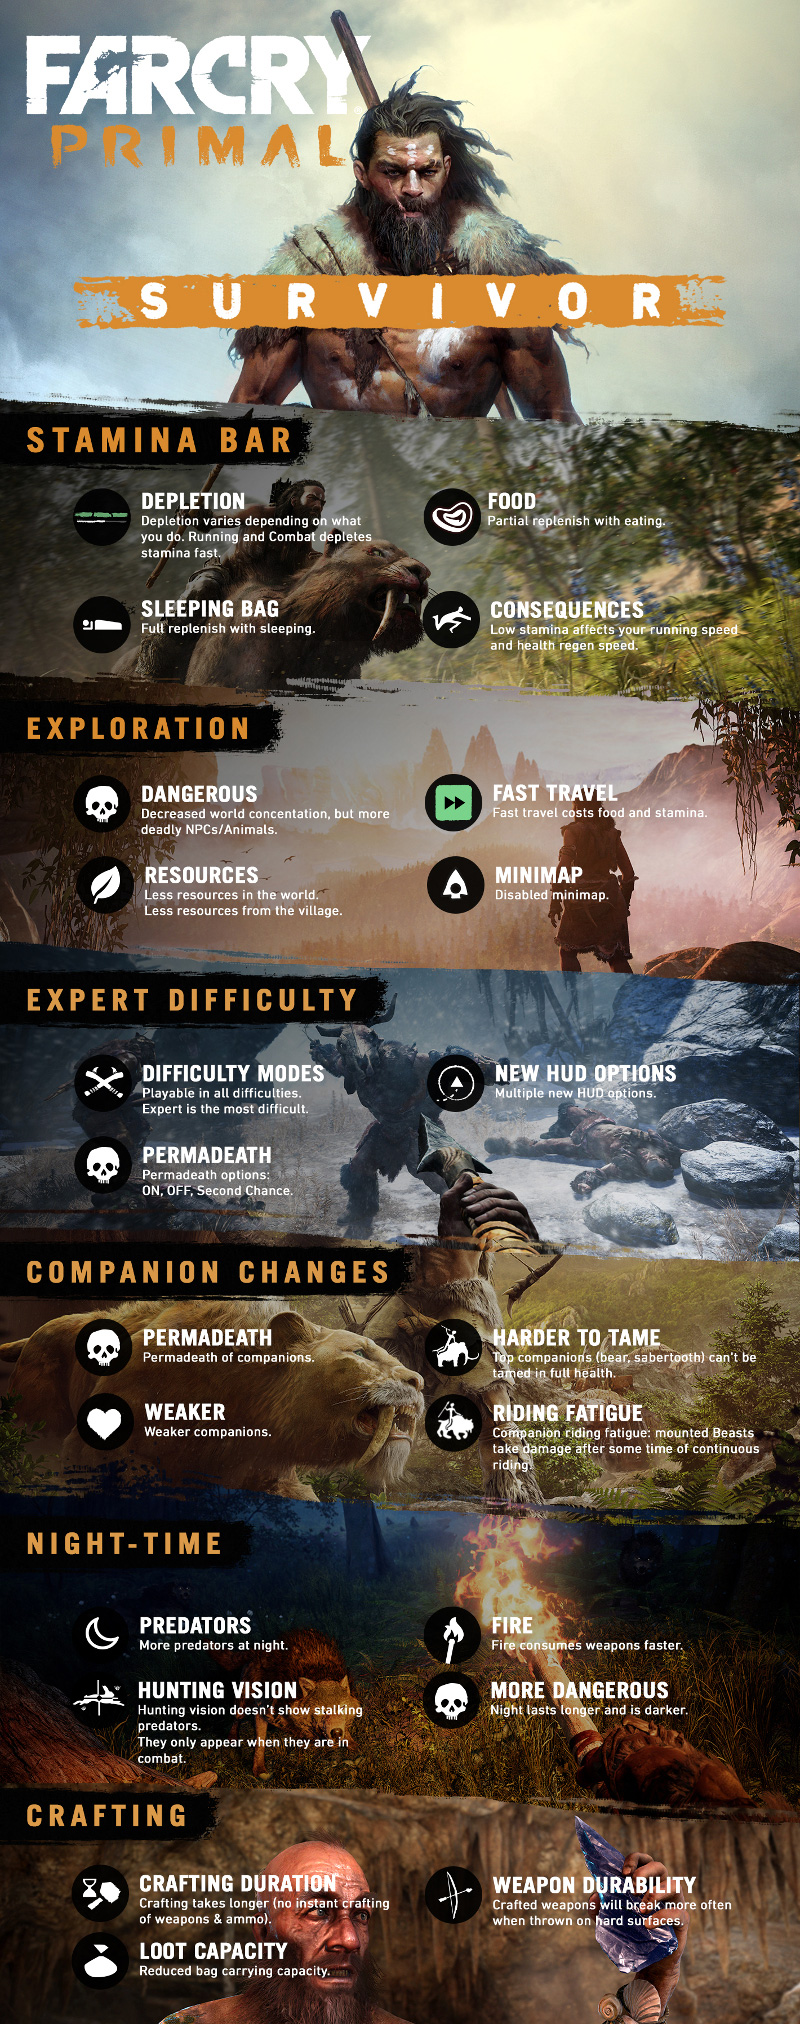 Survivor Mode Available Now For Far Cry Primal